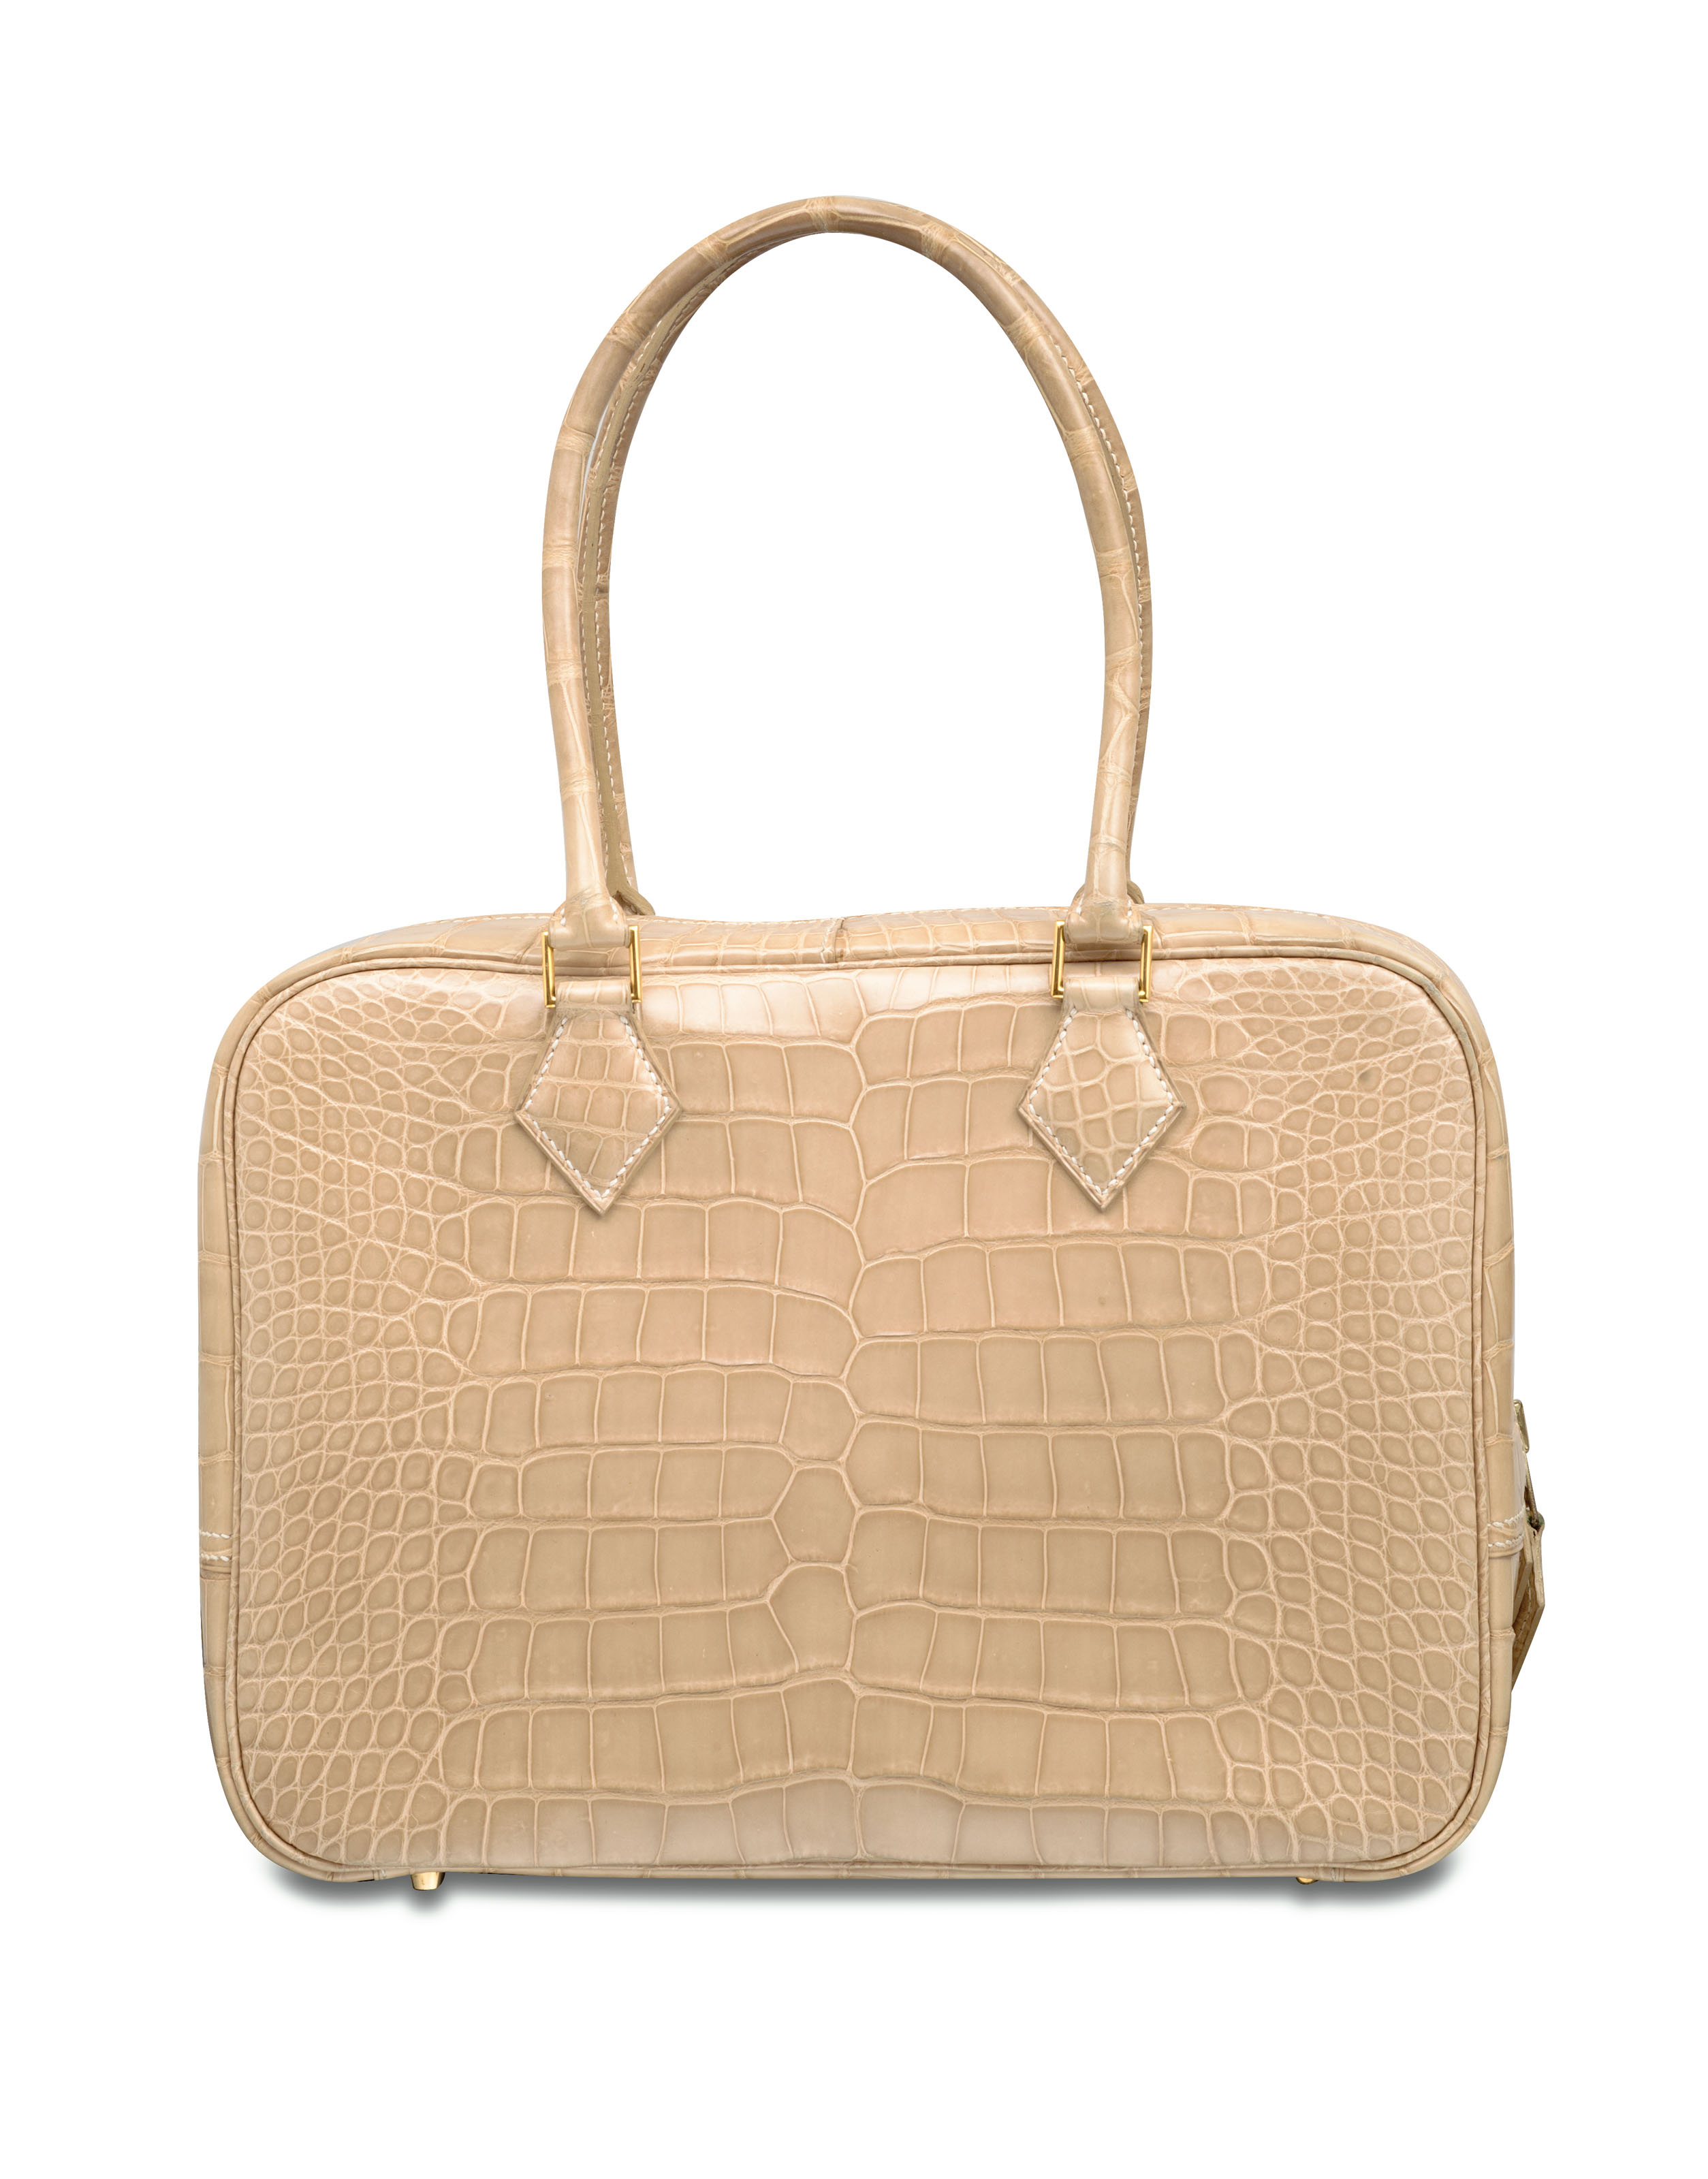 00f64de1dd ... low price a shiny poudre alligator plume 28 bag with gold hardware  hermÈs ef378 b1f50 ...